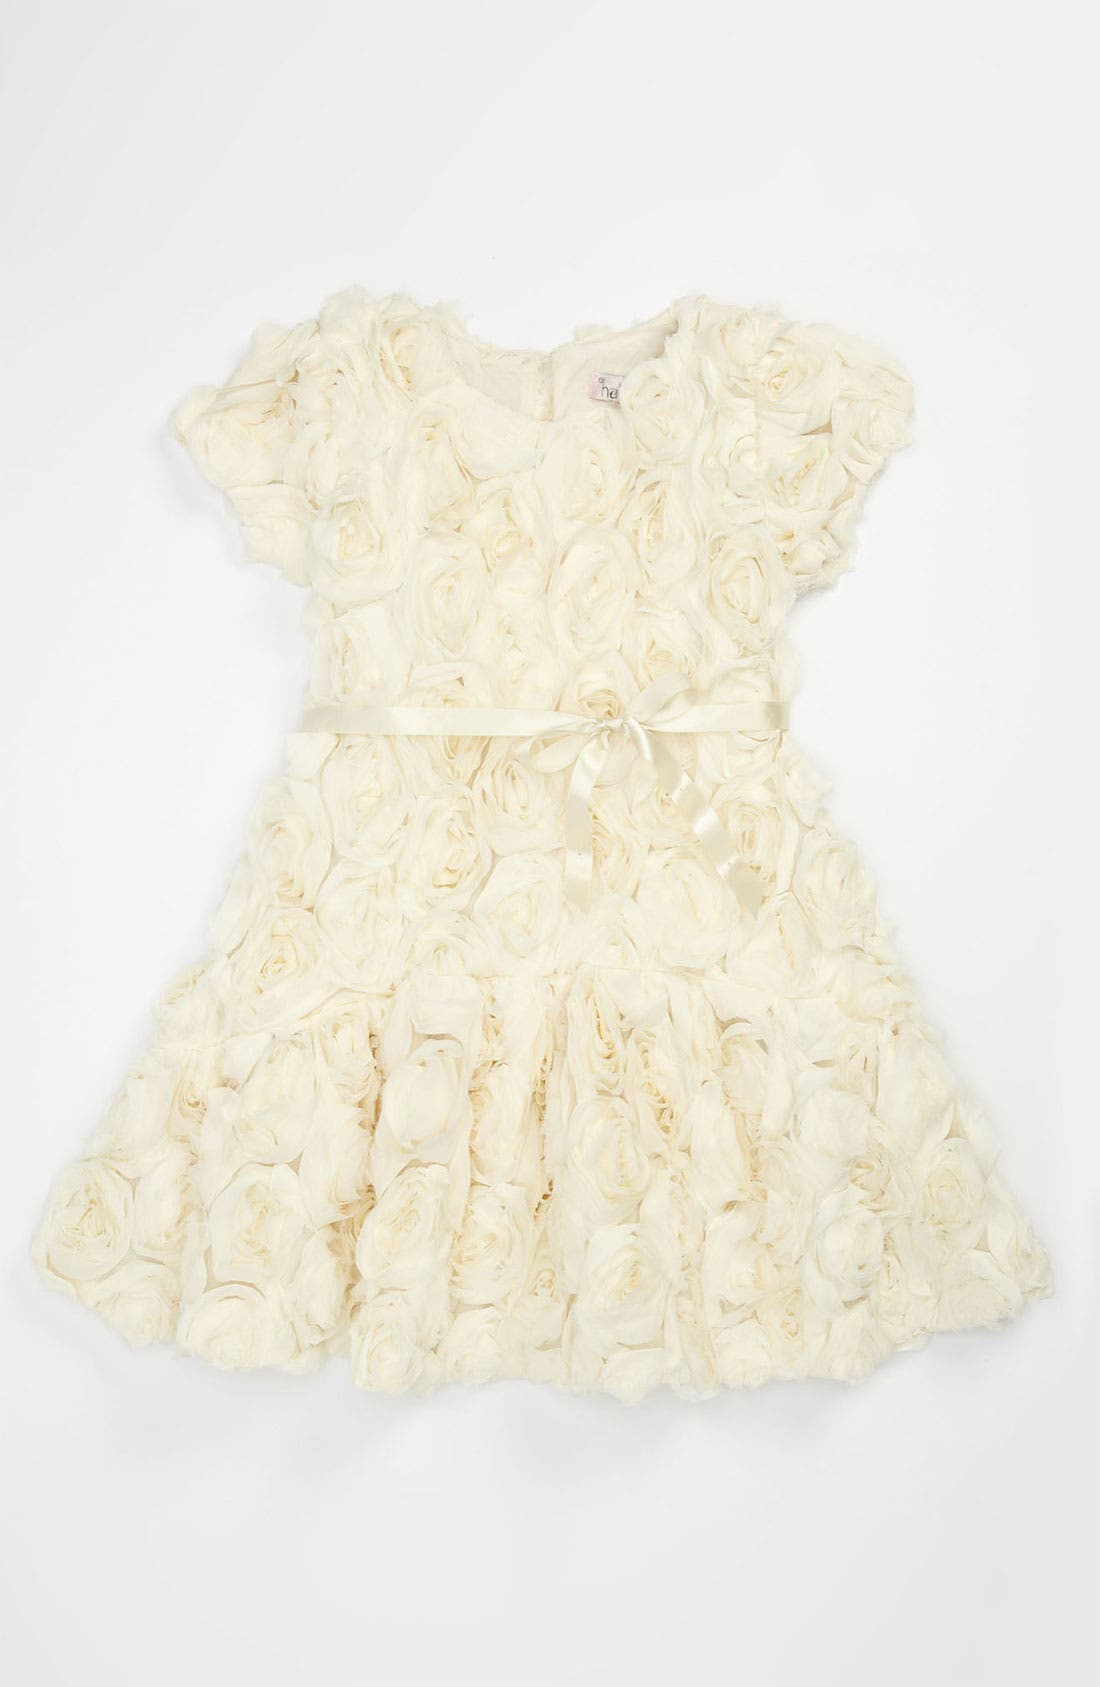 Alternate Image 1 Selected - Halabaloo 'Bouquet' Dress (Little Girls & Big Girls)